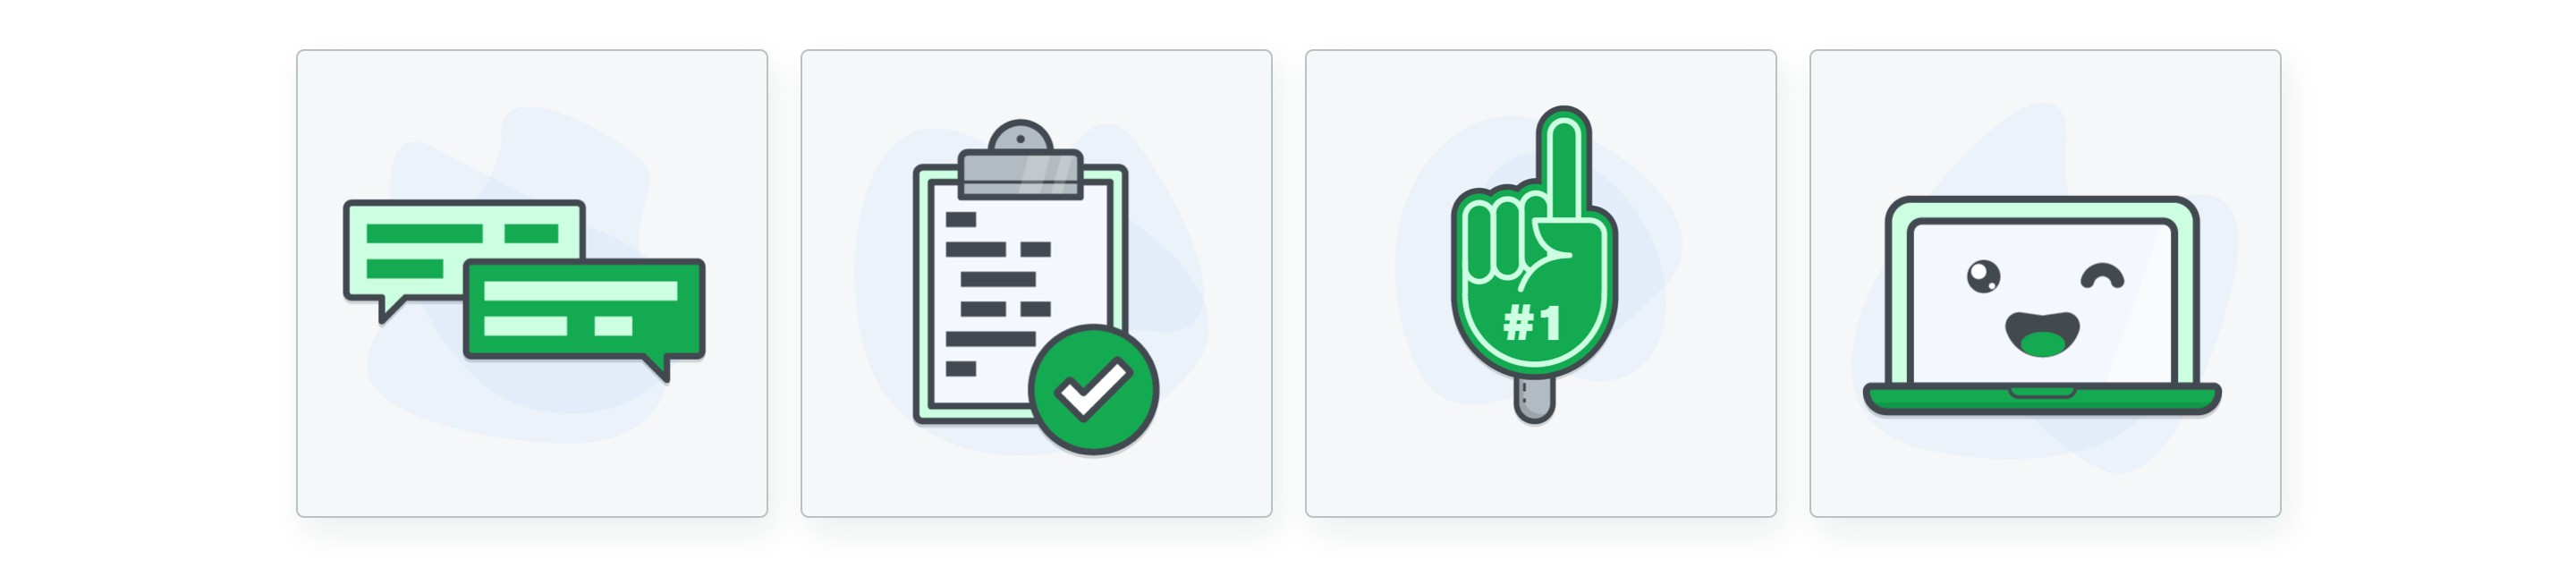 Illustrations of our pillars in the MongoDB design team process